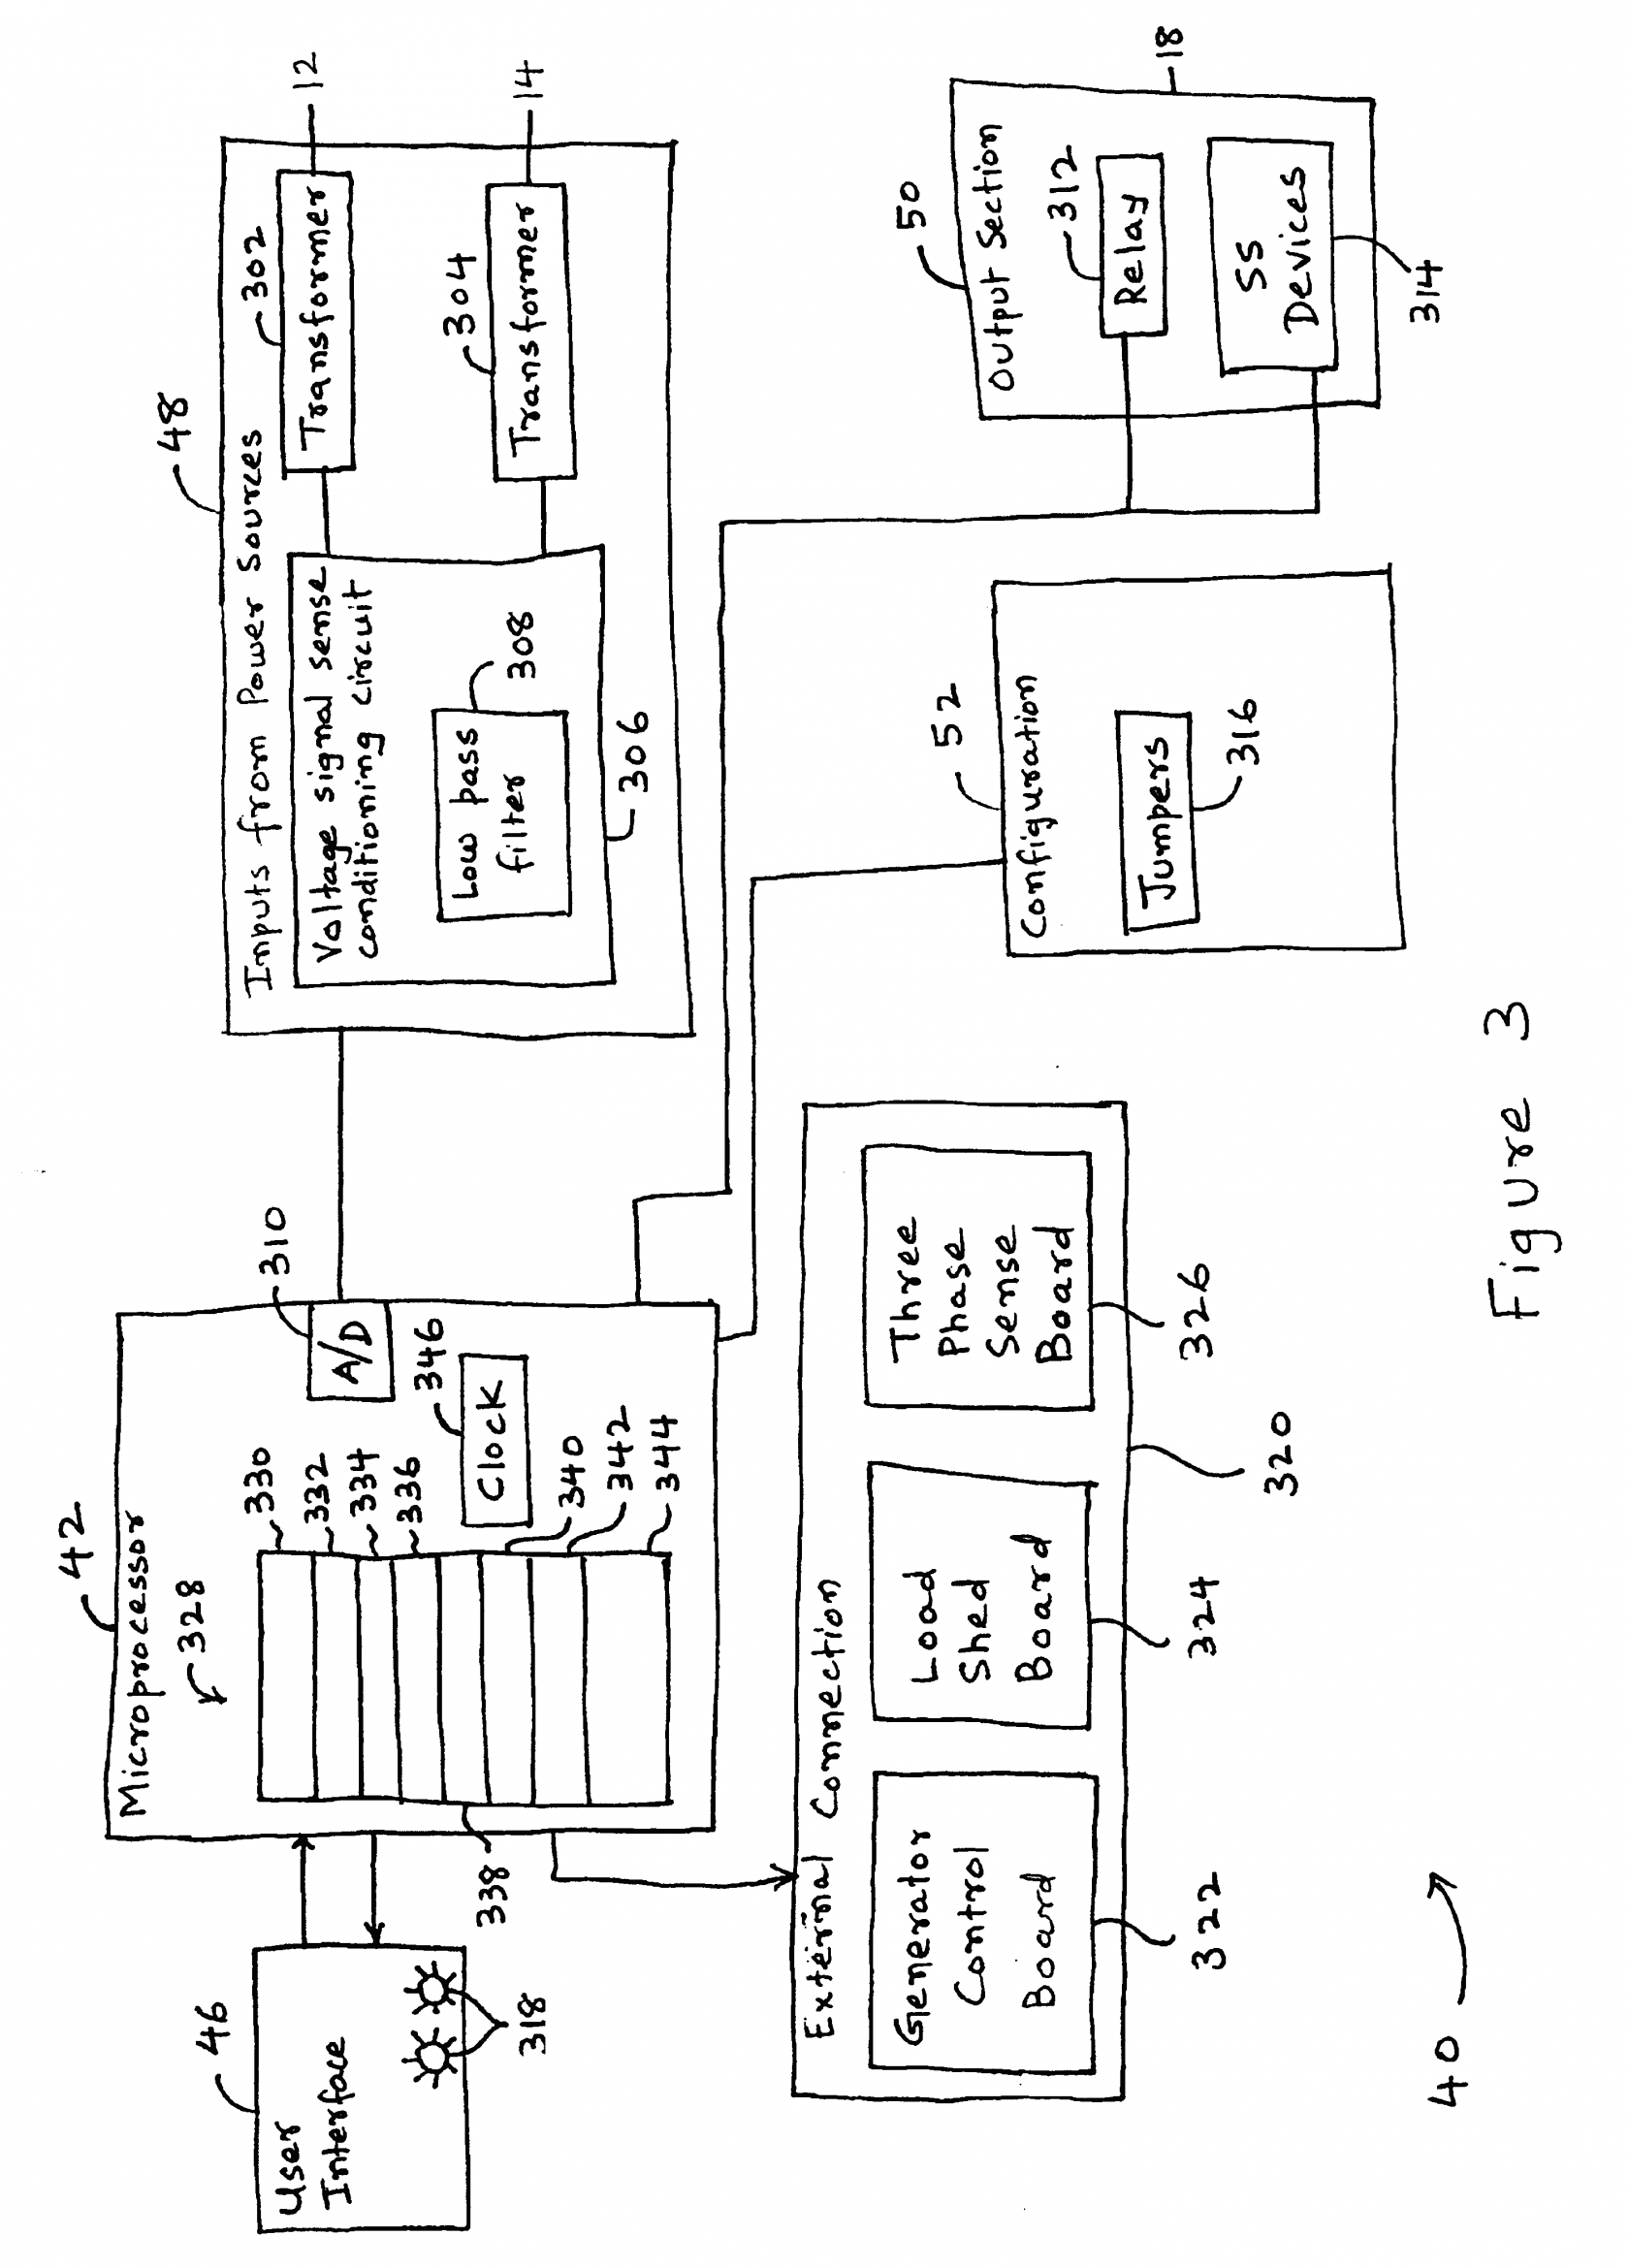 200 automatic transfer switch wiring diagram